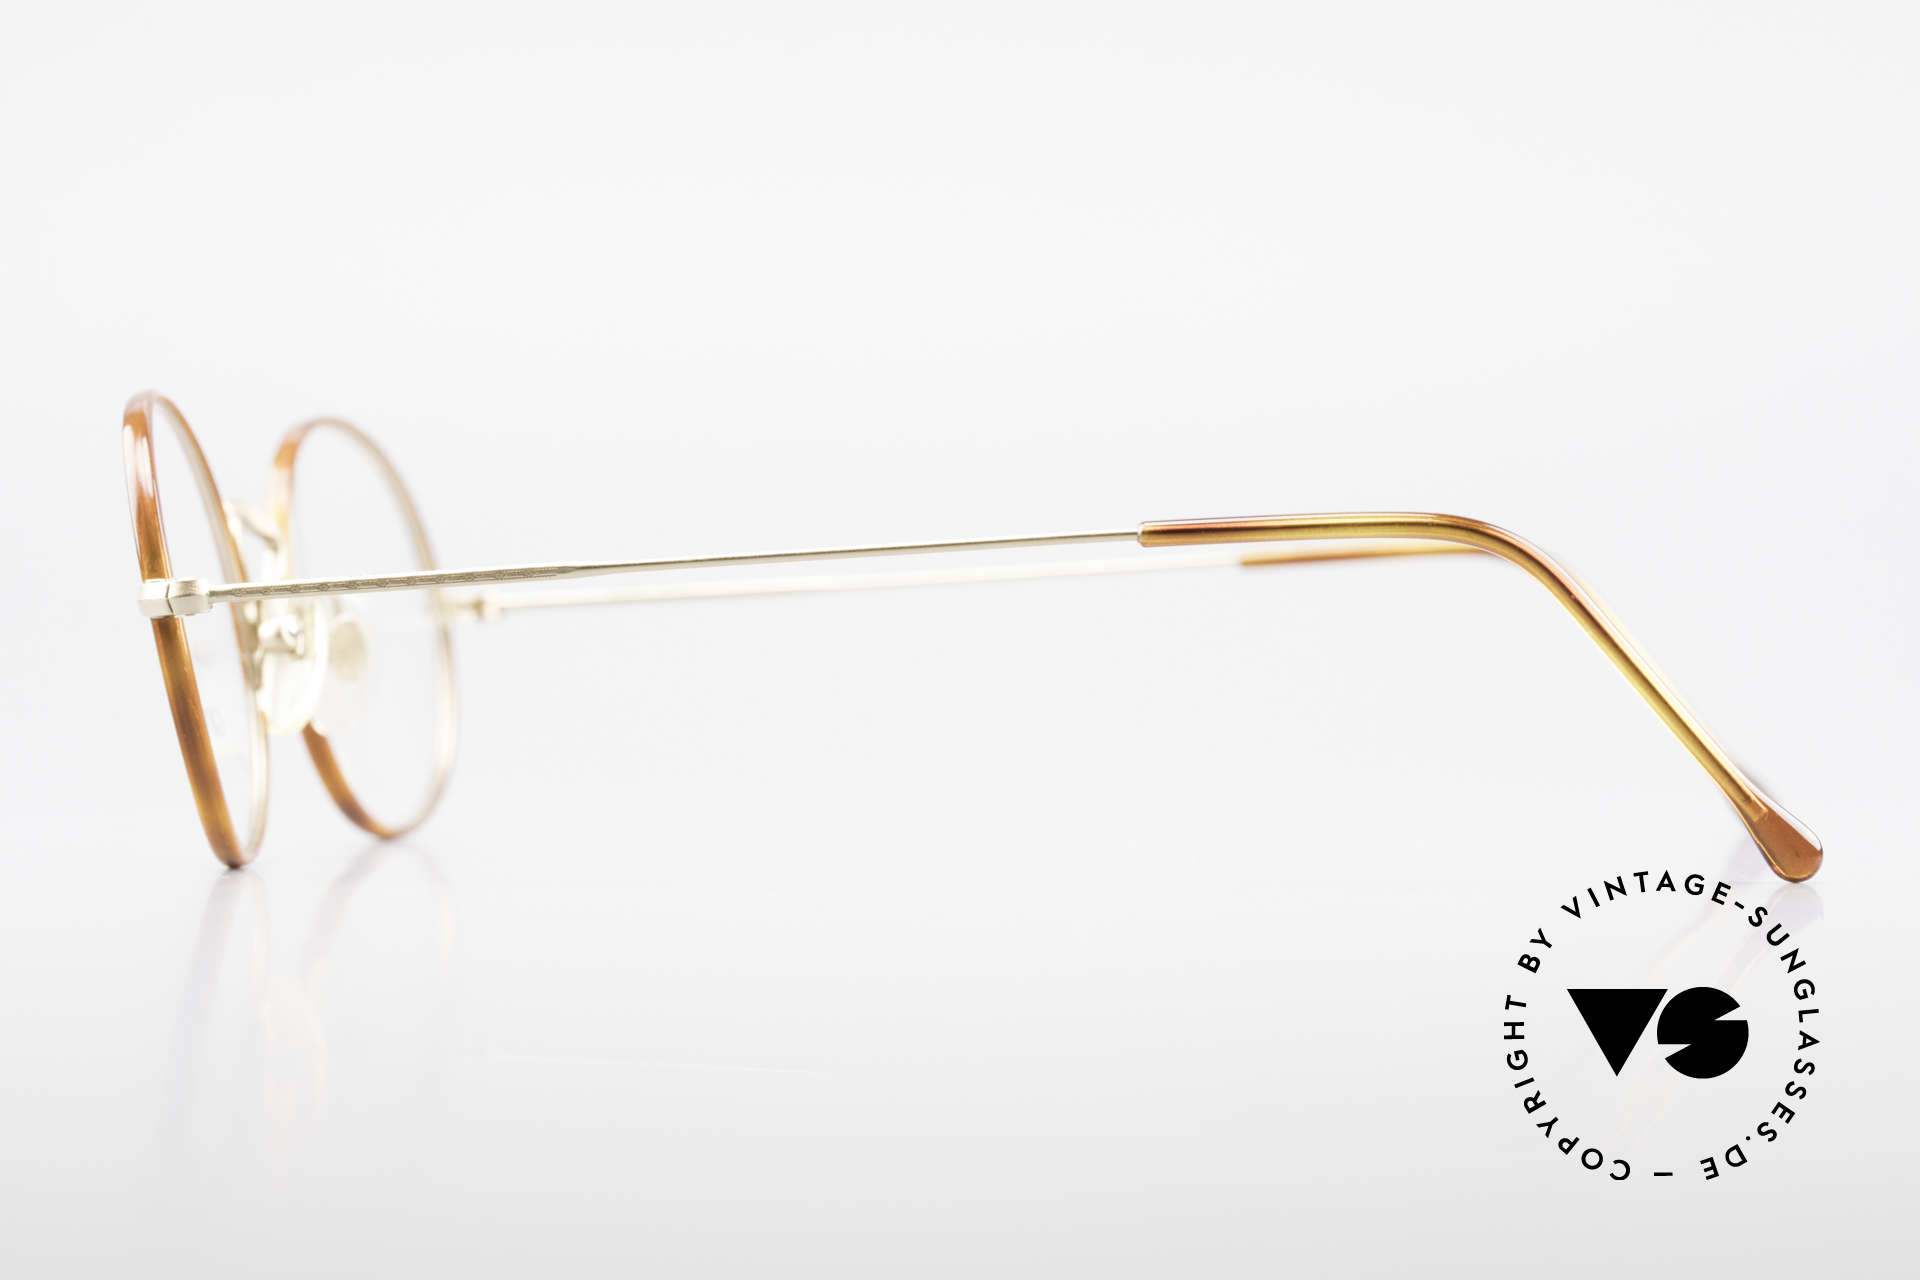 Giorgio Armani 247 90's Oval Eyeglasses No Retro, NO RETRO SPECS, but an app. 25 years old Original, Made for Men and Women